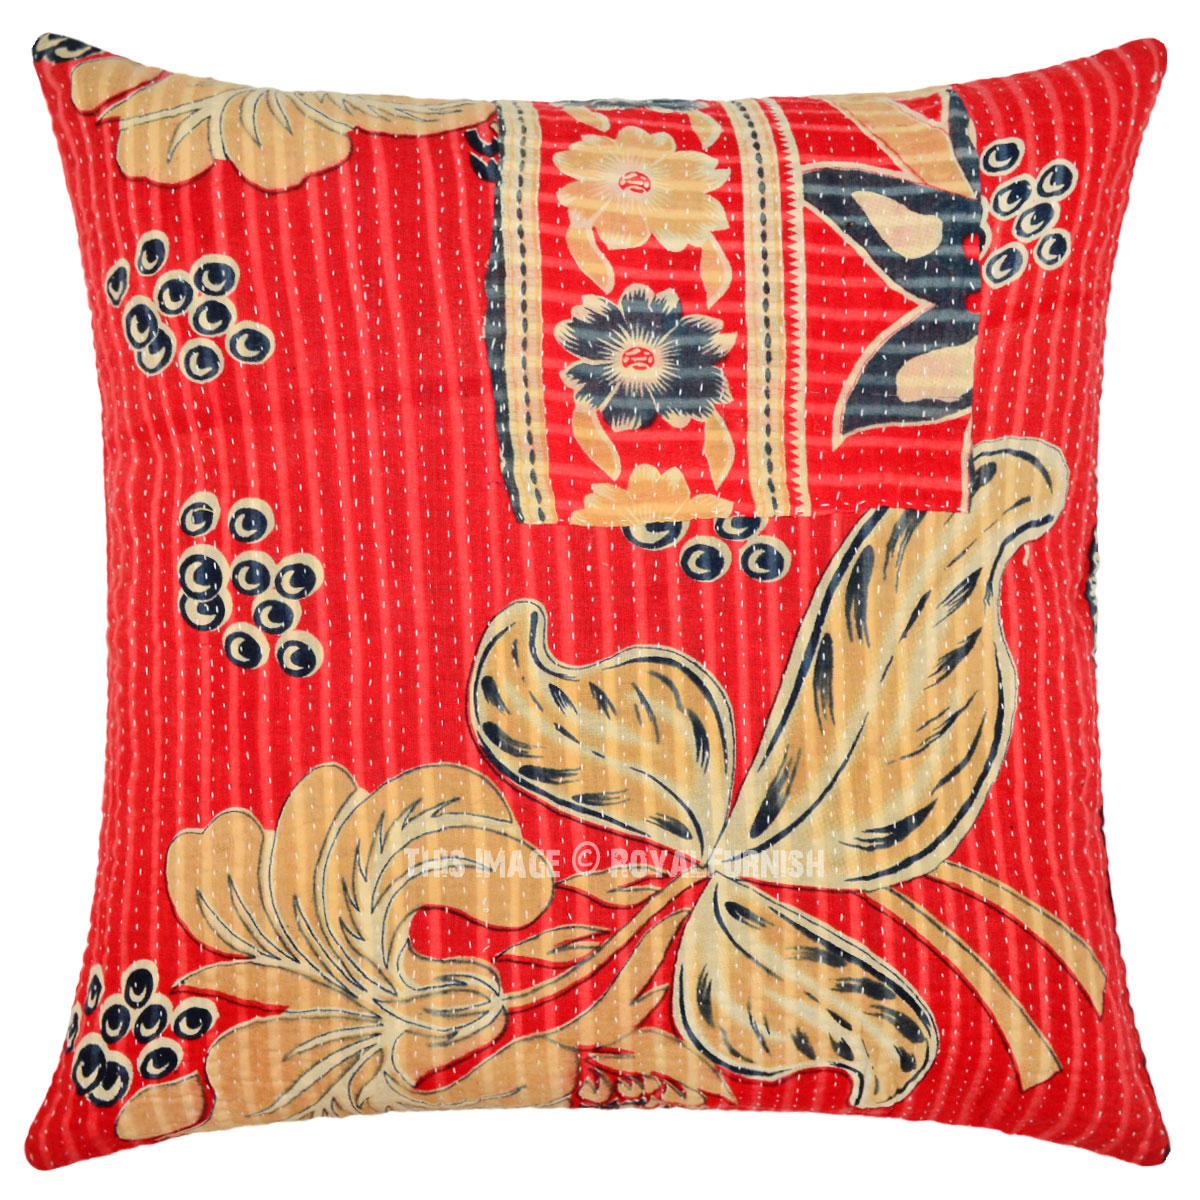 Vintage Throw Pillow Covers : 18X18 Red Multi Decorative Old Vintage Kantha Throw Pillow Cover - RoyalFurnish.com